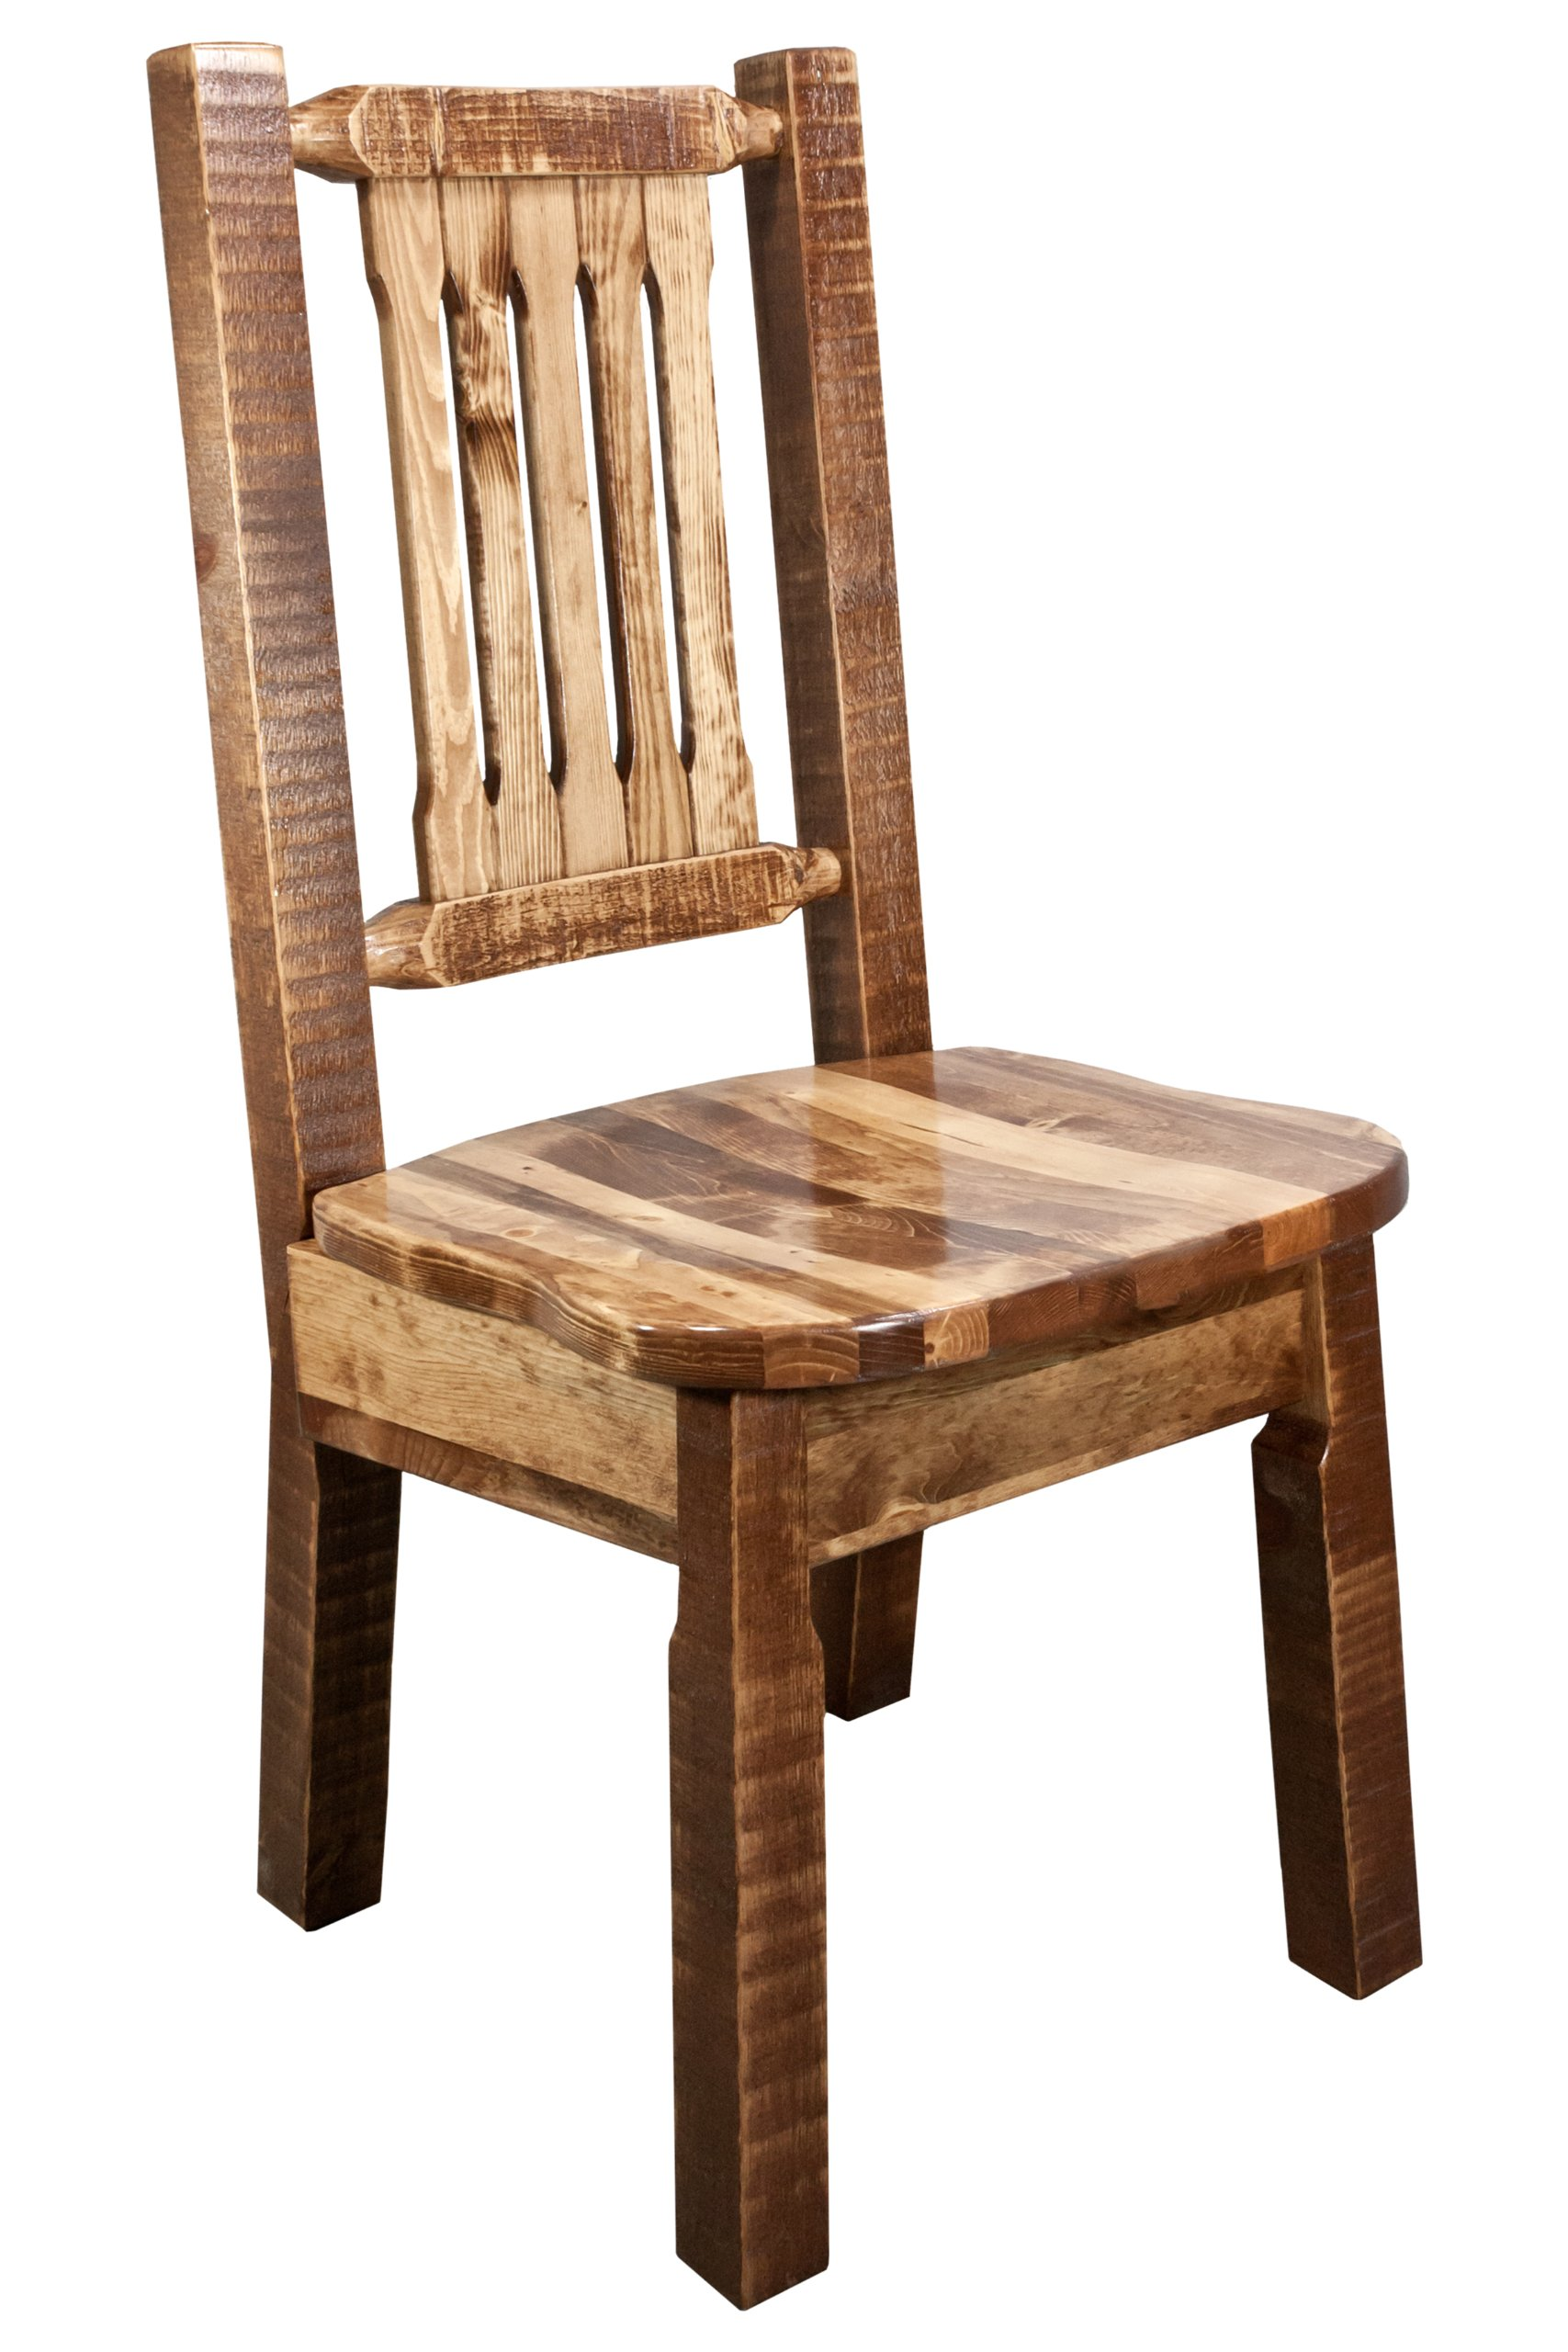 Montana Woodworks Log Furniture - Dining Chair - Homestead Collection - Stained & Lacquered - Handcrafted Made from dead-standing lodgepole pine Made in the USA - kitchen-dining-room-furniture, kitchen-dining-room, kitchen-dining-room-chairs - 81oNkQmyaeL -